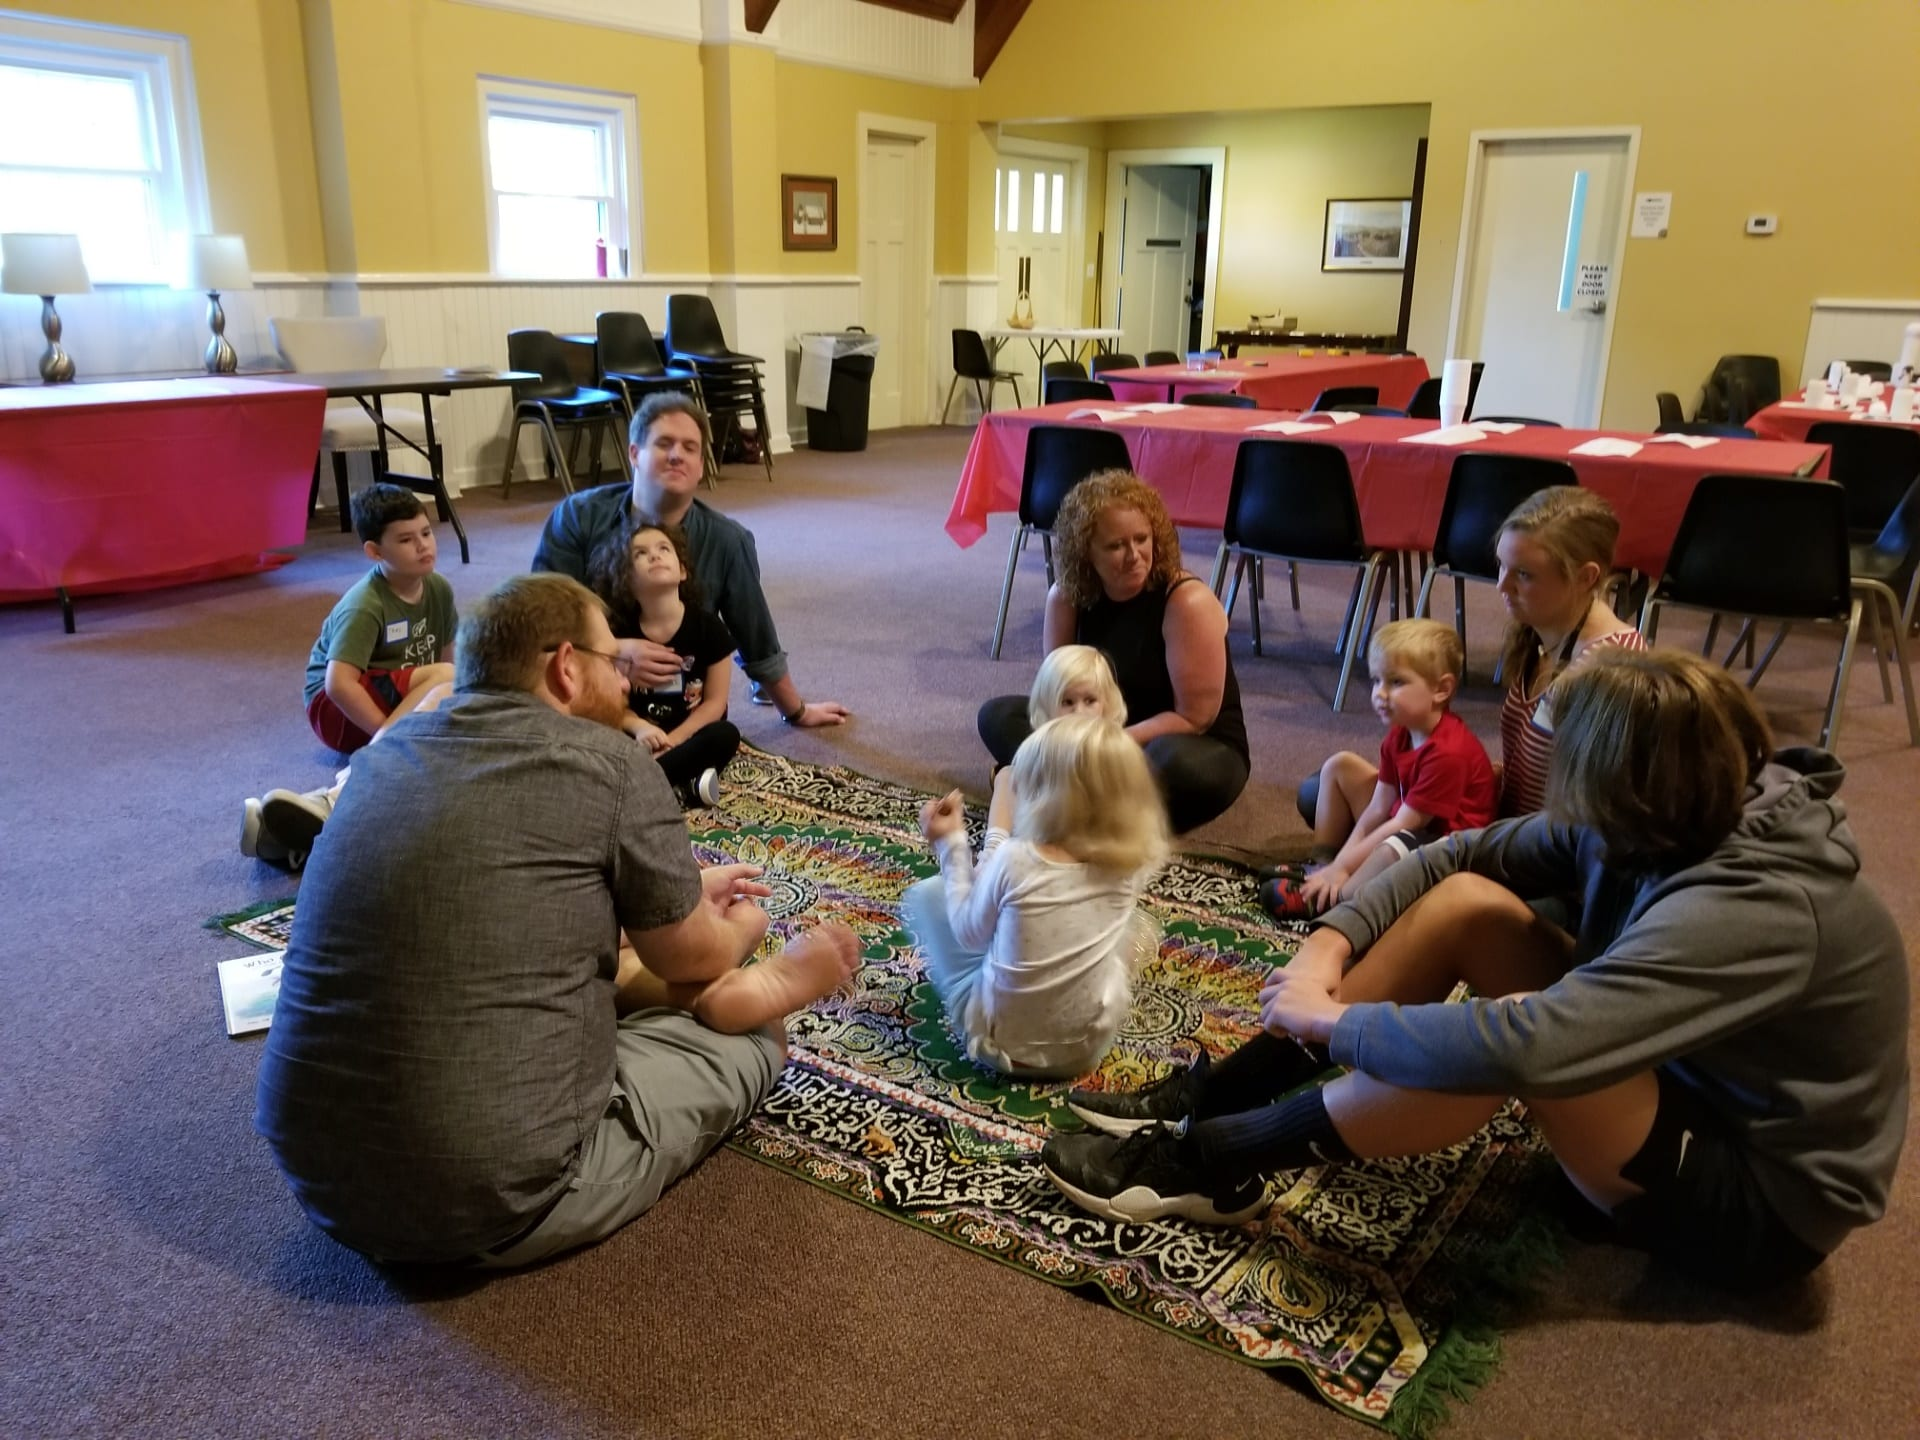 vacation bible school 20190727 094329 - St. Philip's Episcopal Church